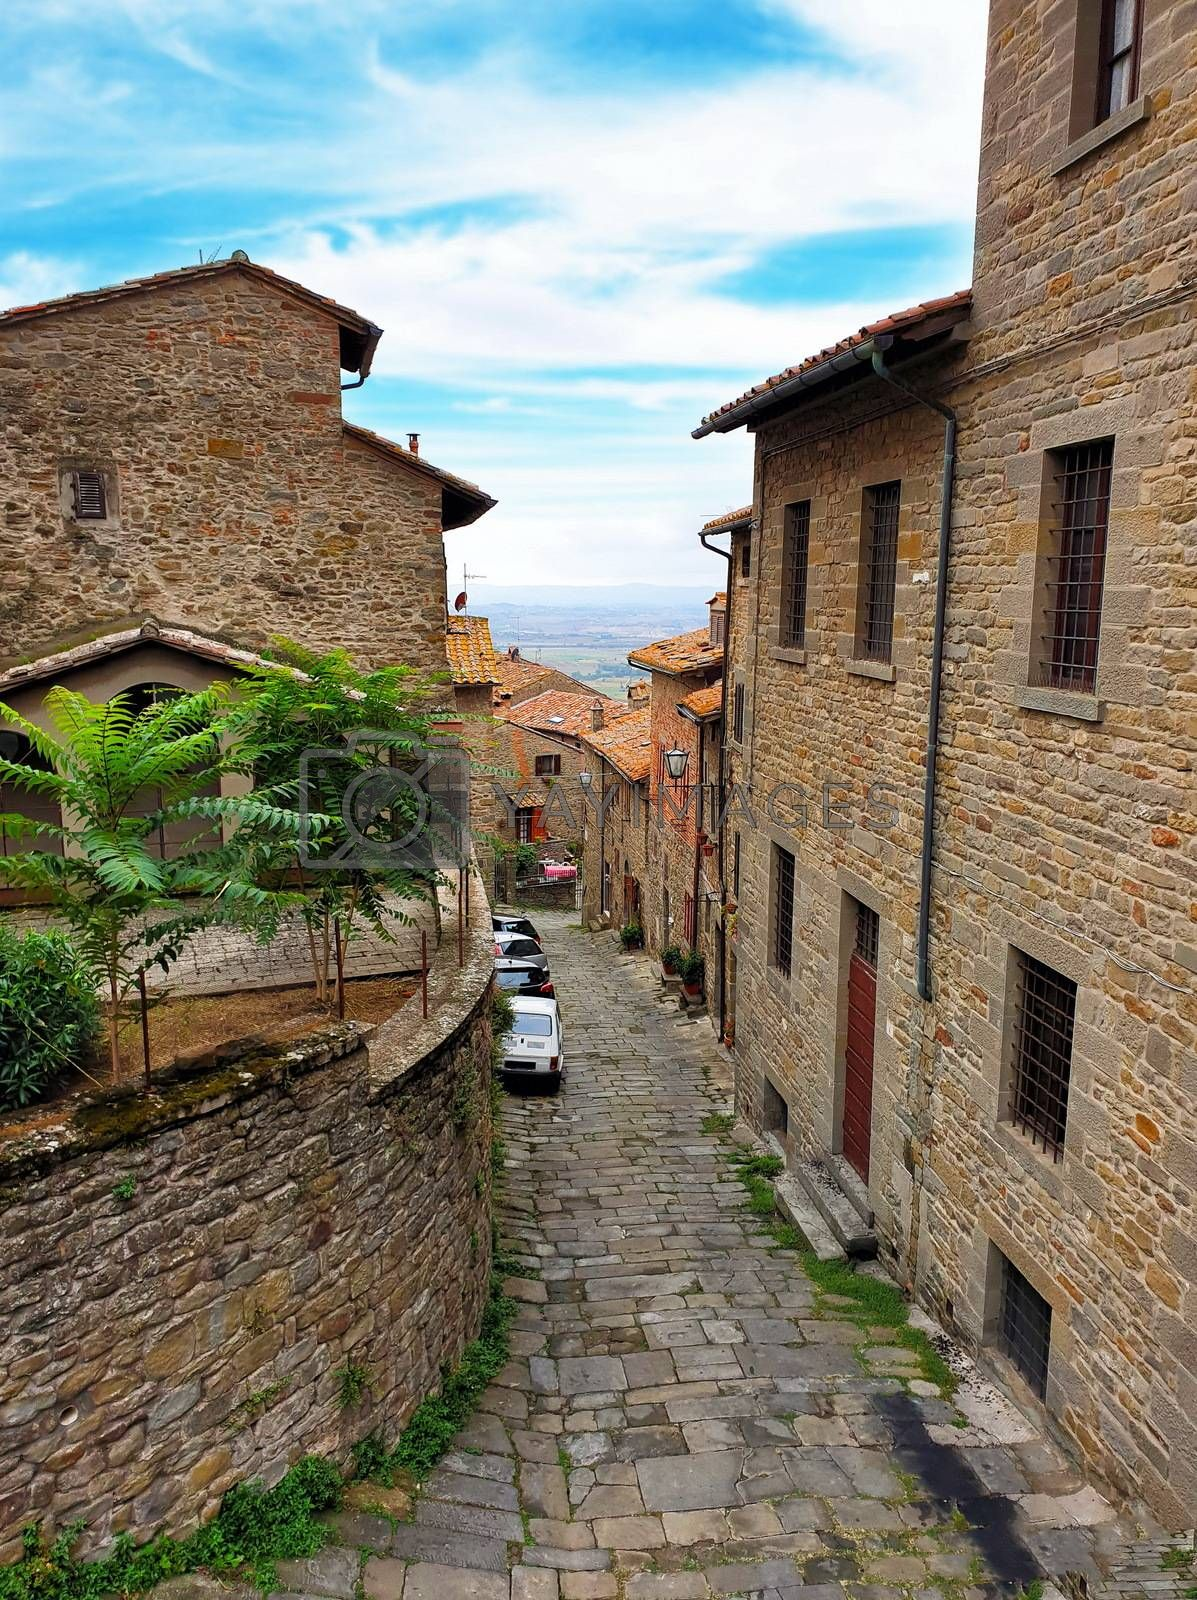 Traveling in Toscana. Italy